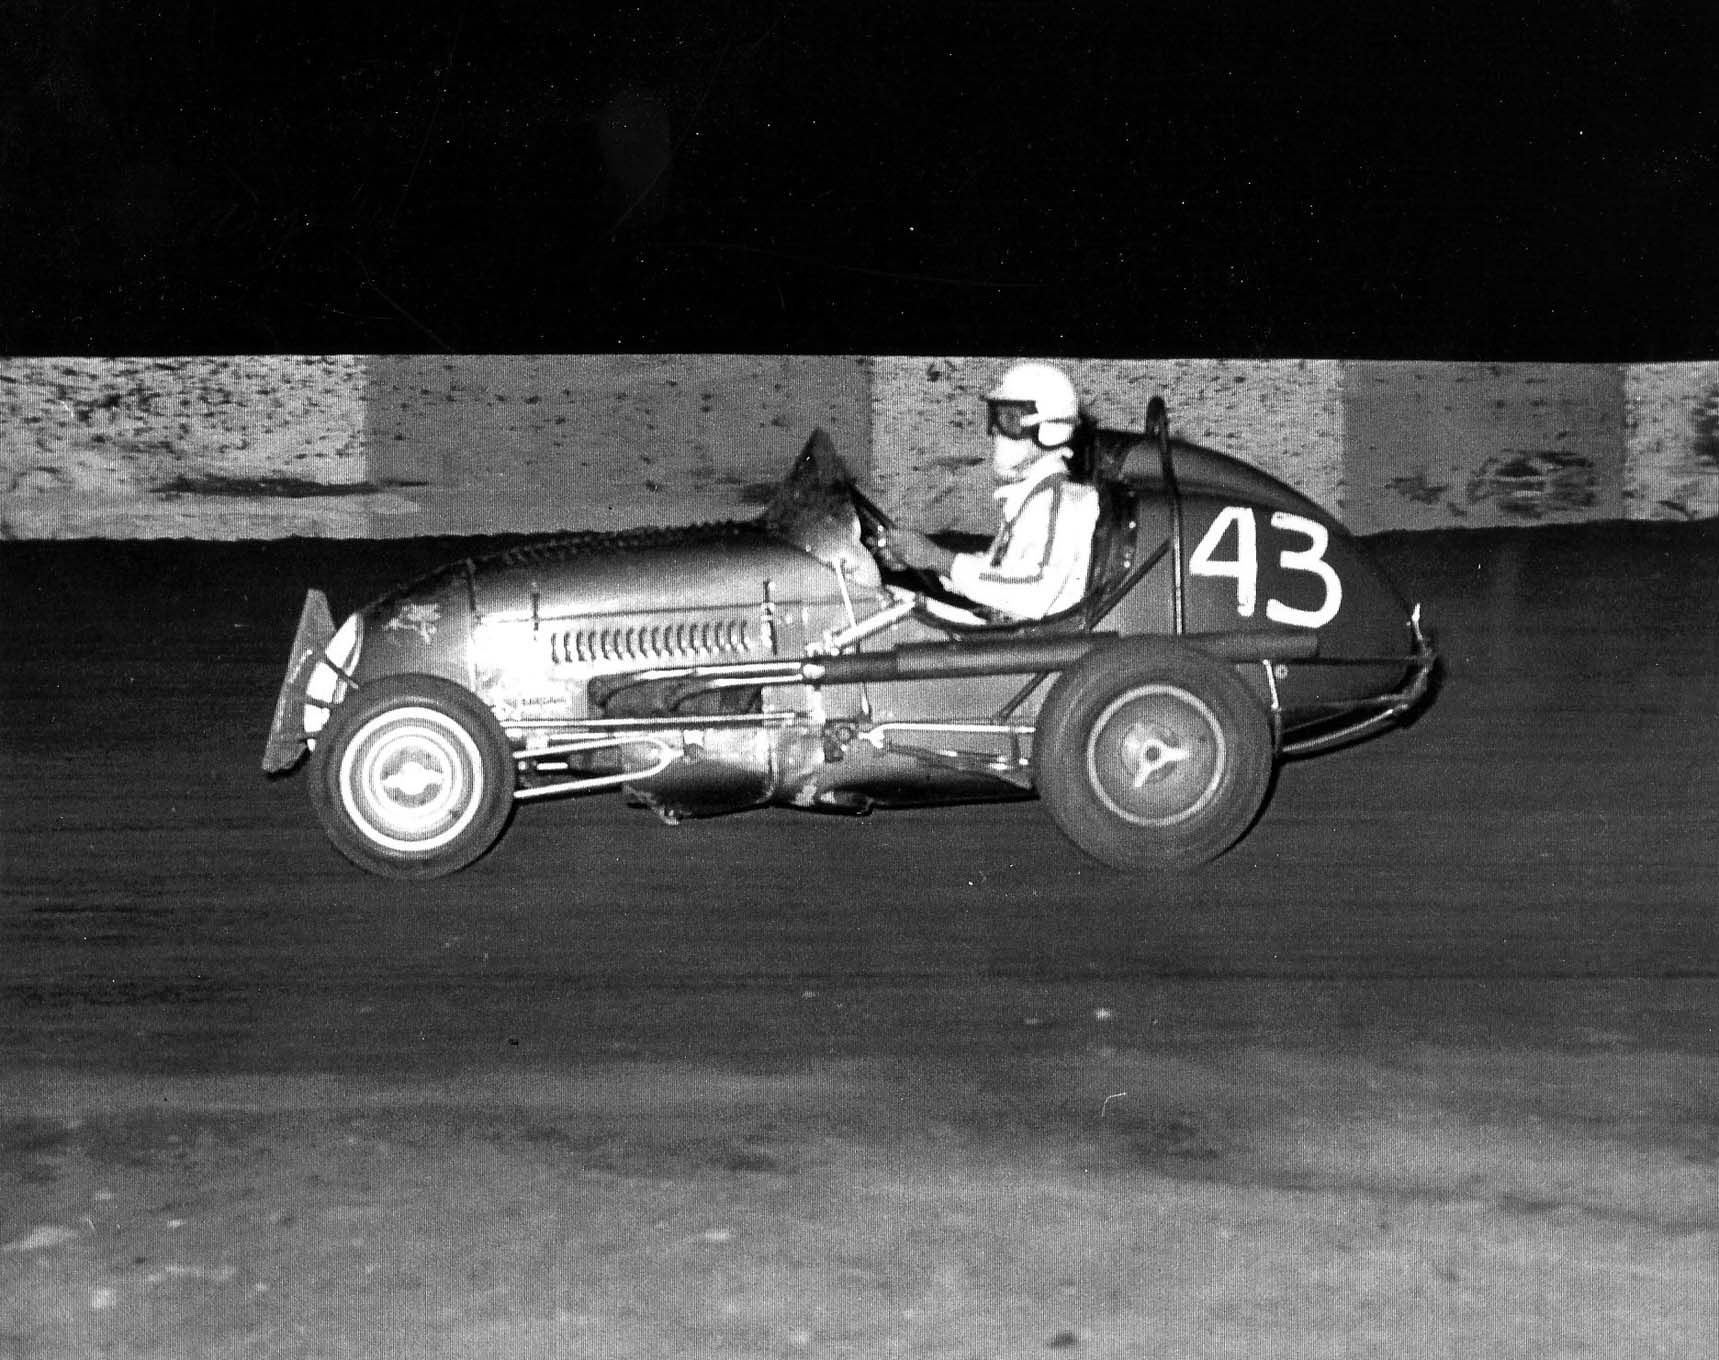 """""""My first Sprint Car race, in El Centro in 1962,"""" says Skip. """"I had to learn pretty fast that when I got spun into the wall it was because I was the new guy. My friend Colby Scroggins said when you go out again in the semi, you run that guy into the wall because it's your first race and everyone is watching you. If you don't put him in the wall, the other bullies will crash you every race."""" Scroggins won the CRA points championship in 1962."""